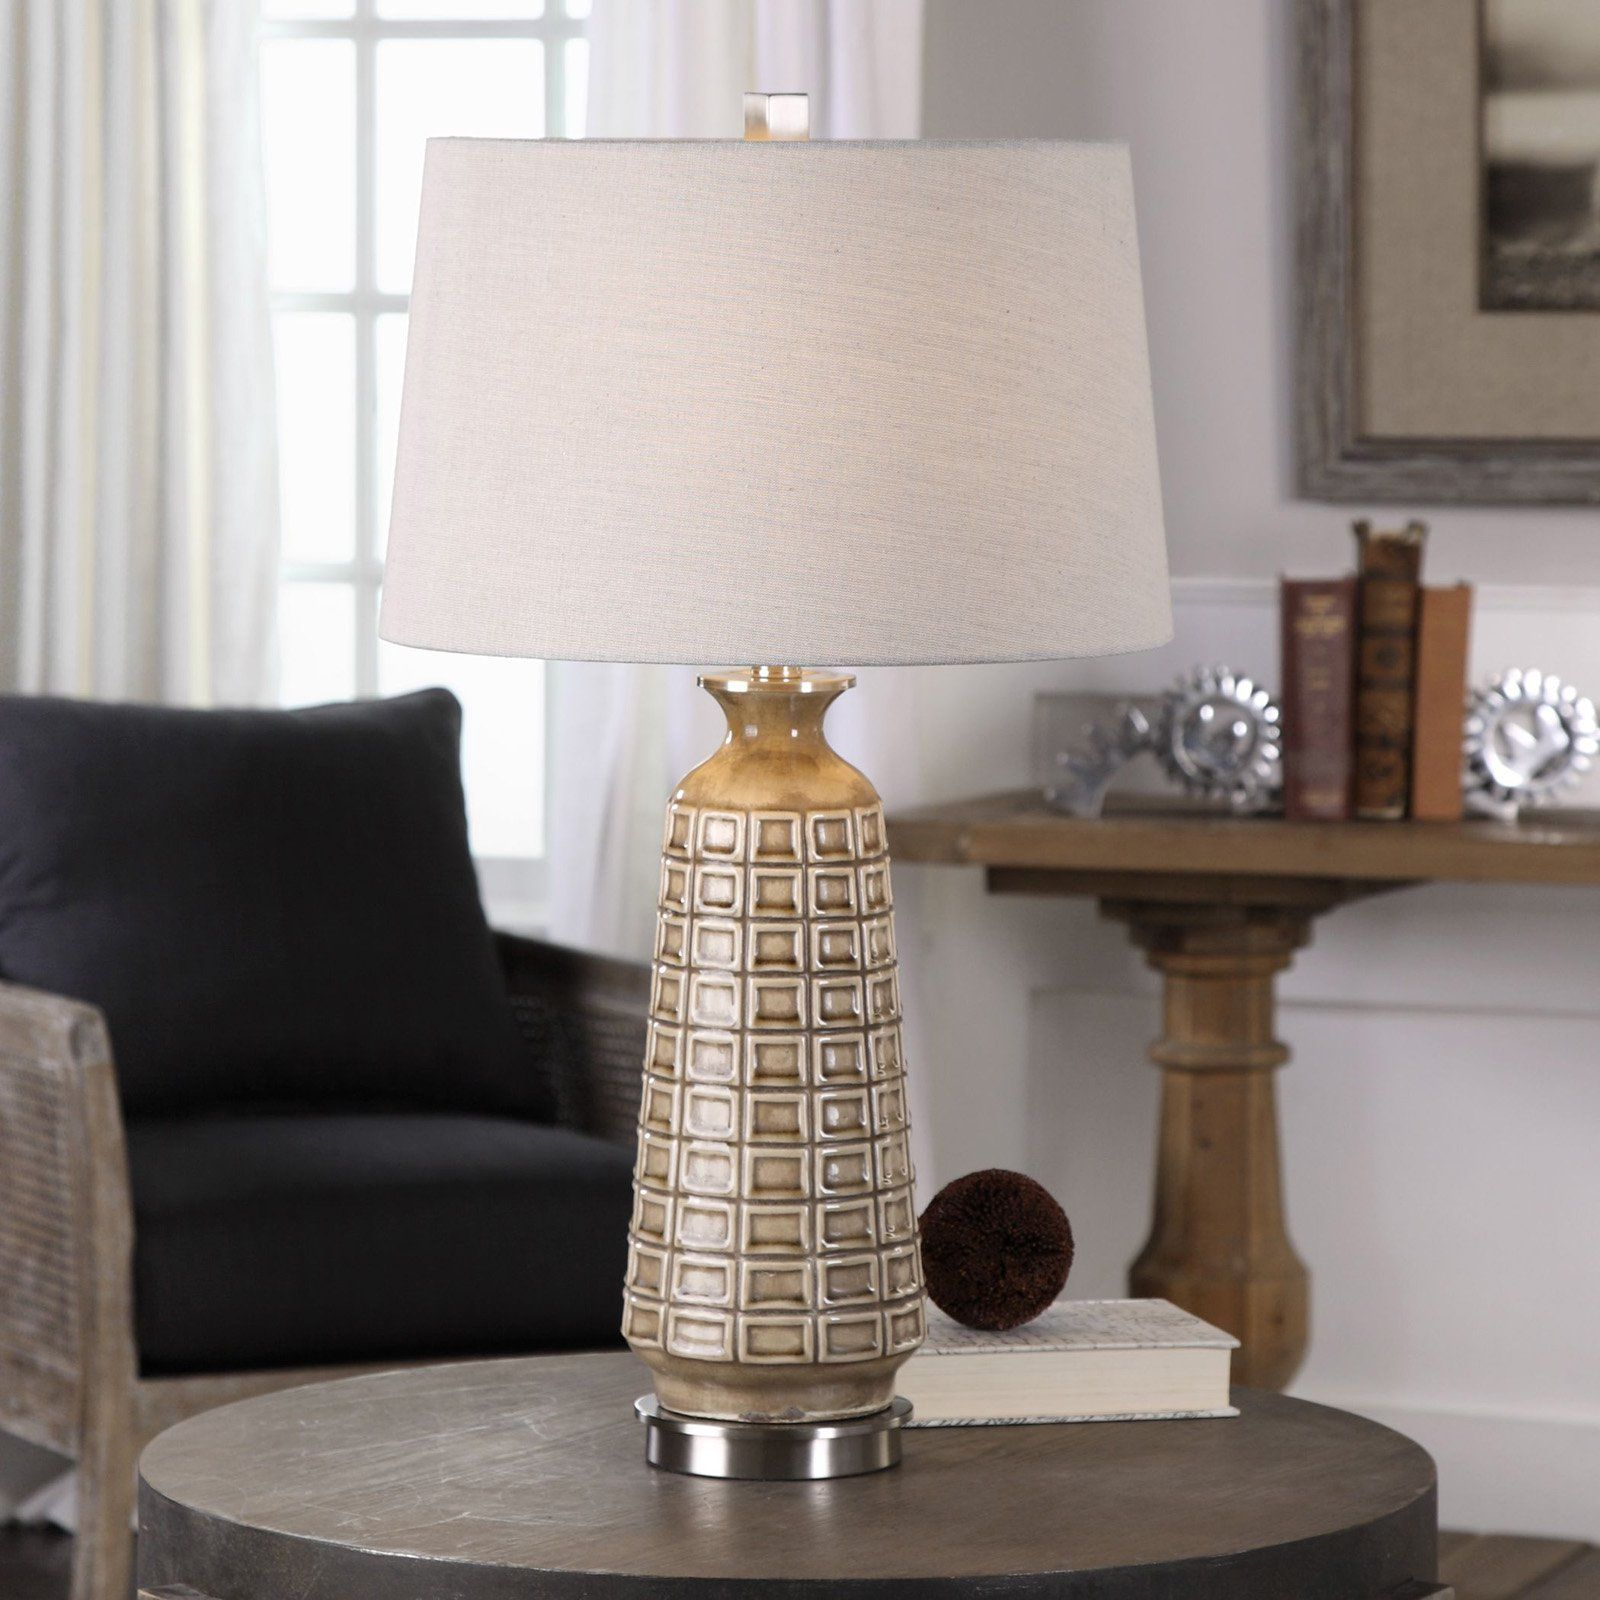 Uttermost Belser Brown Glaze Table Lamp Ceramic Table Lamps